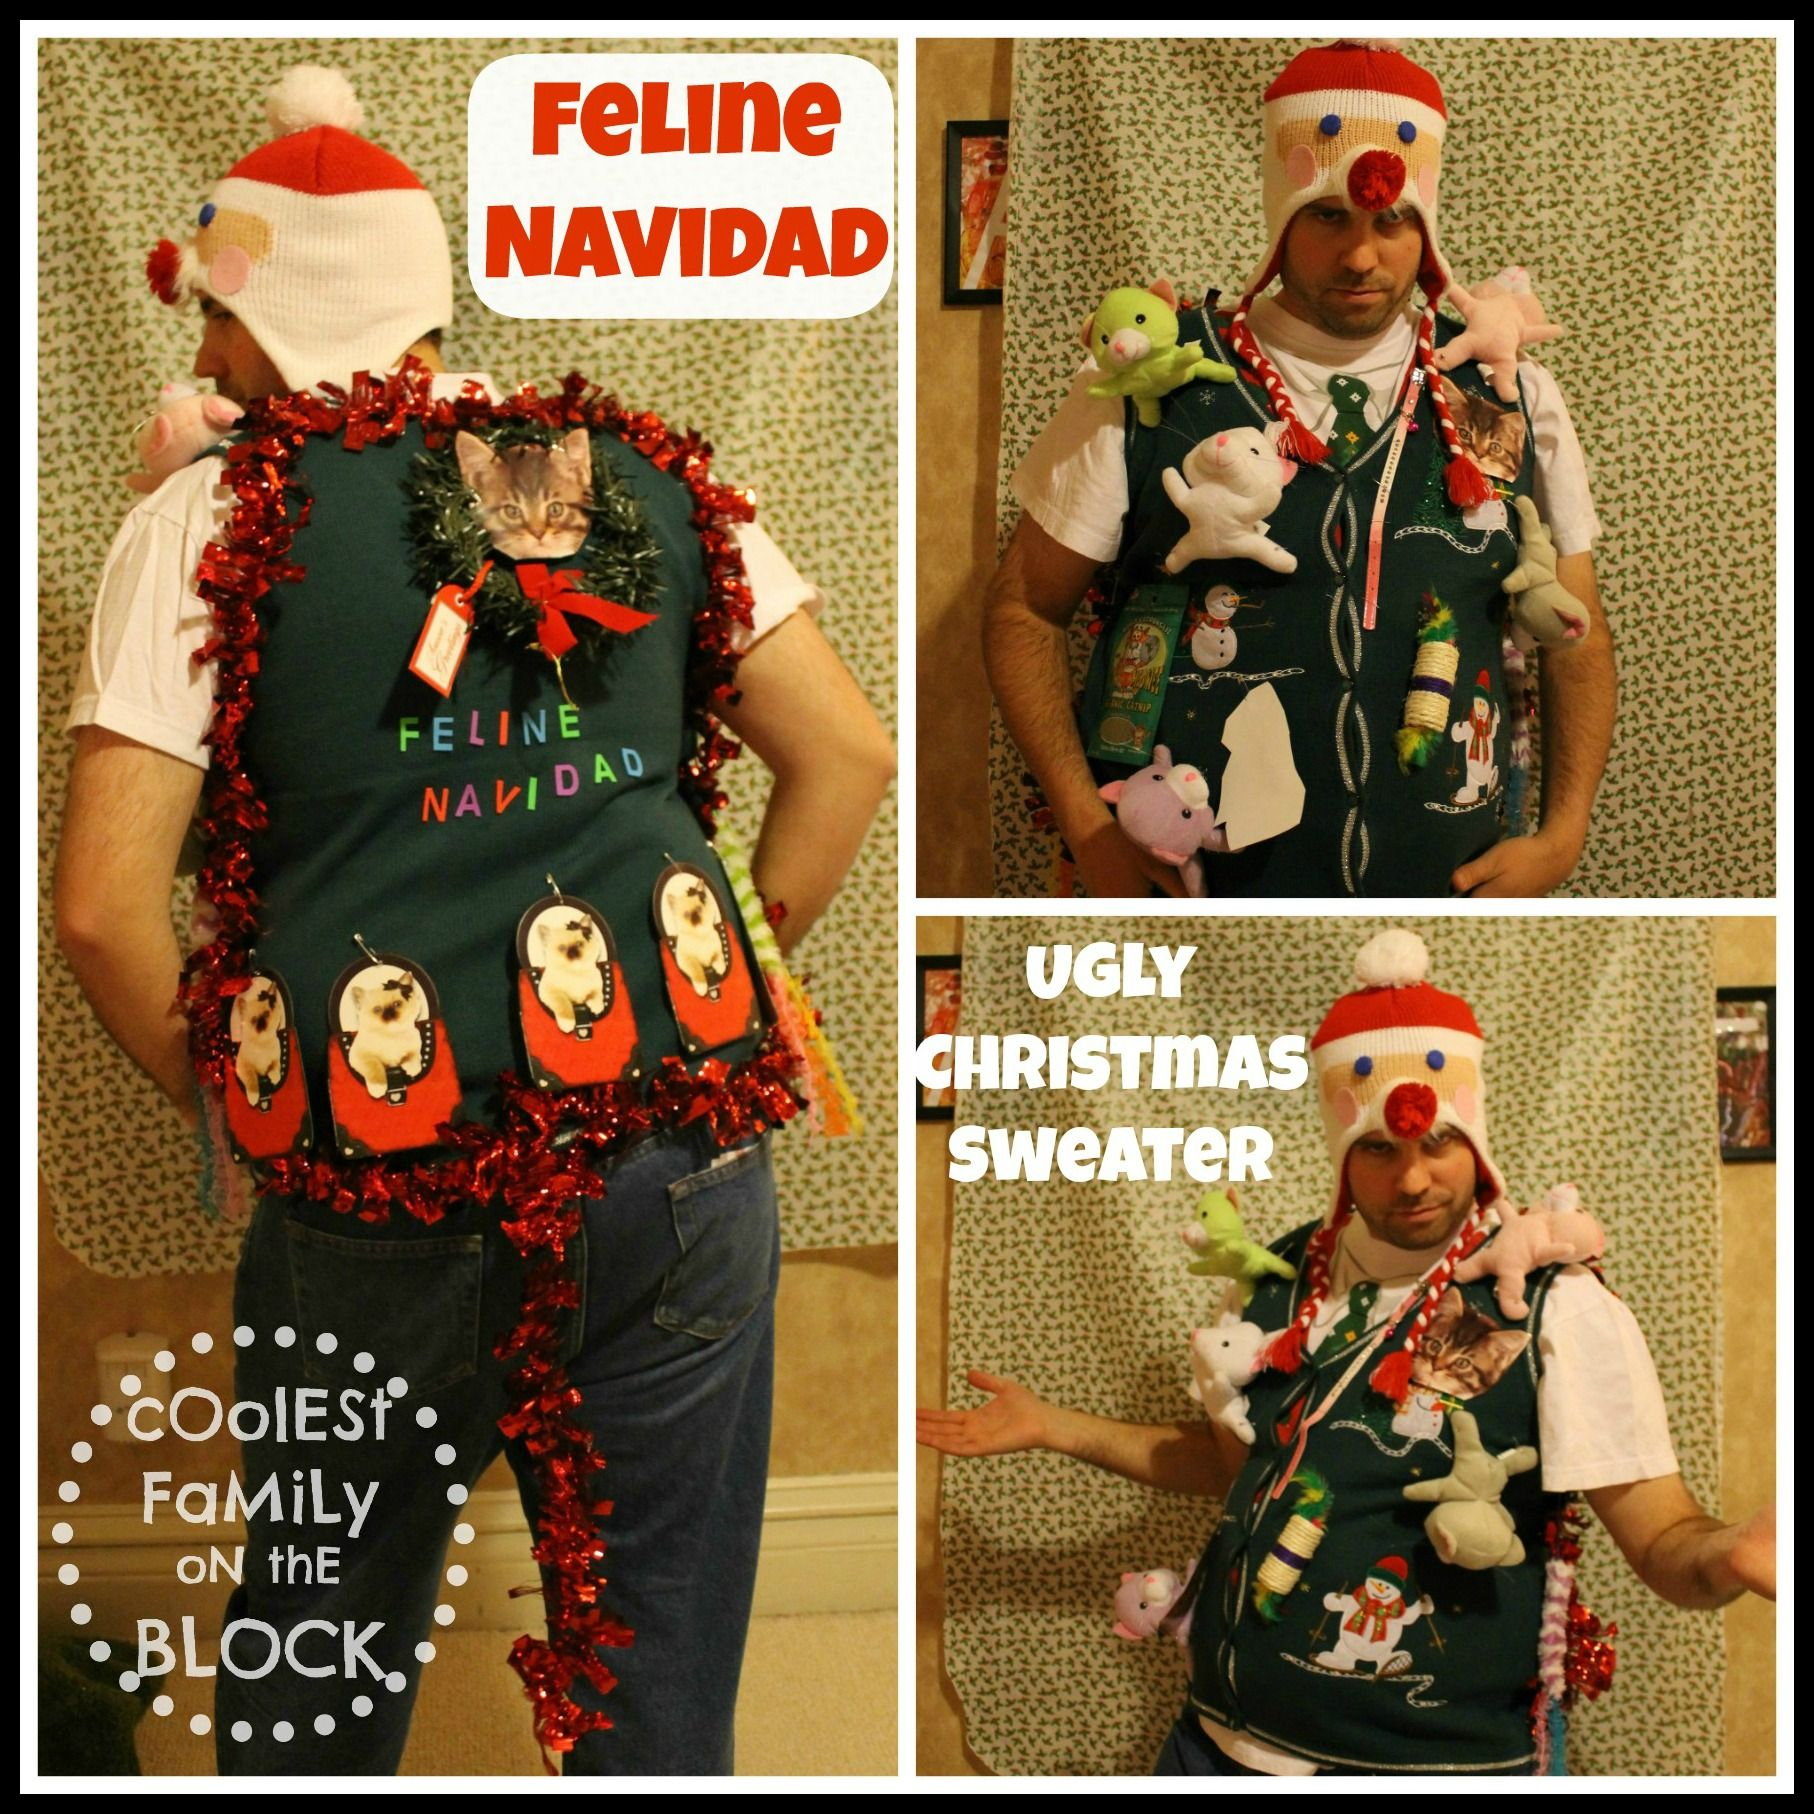 Feline Navidad Ugly Christmas Sweatera Fancy Feast For The Eyes